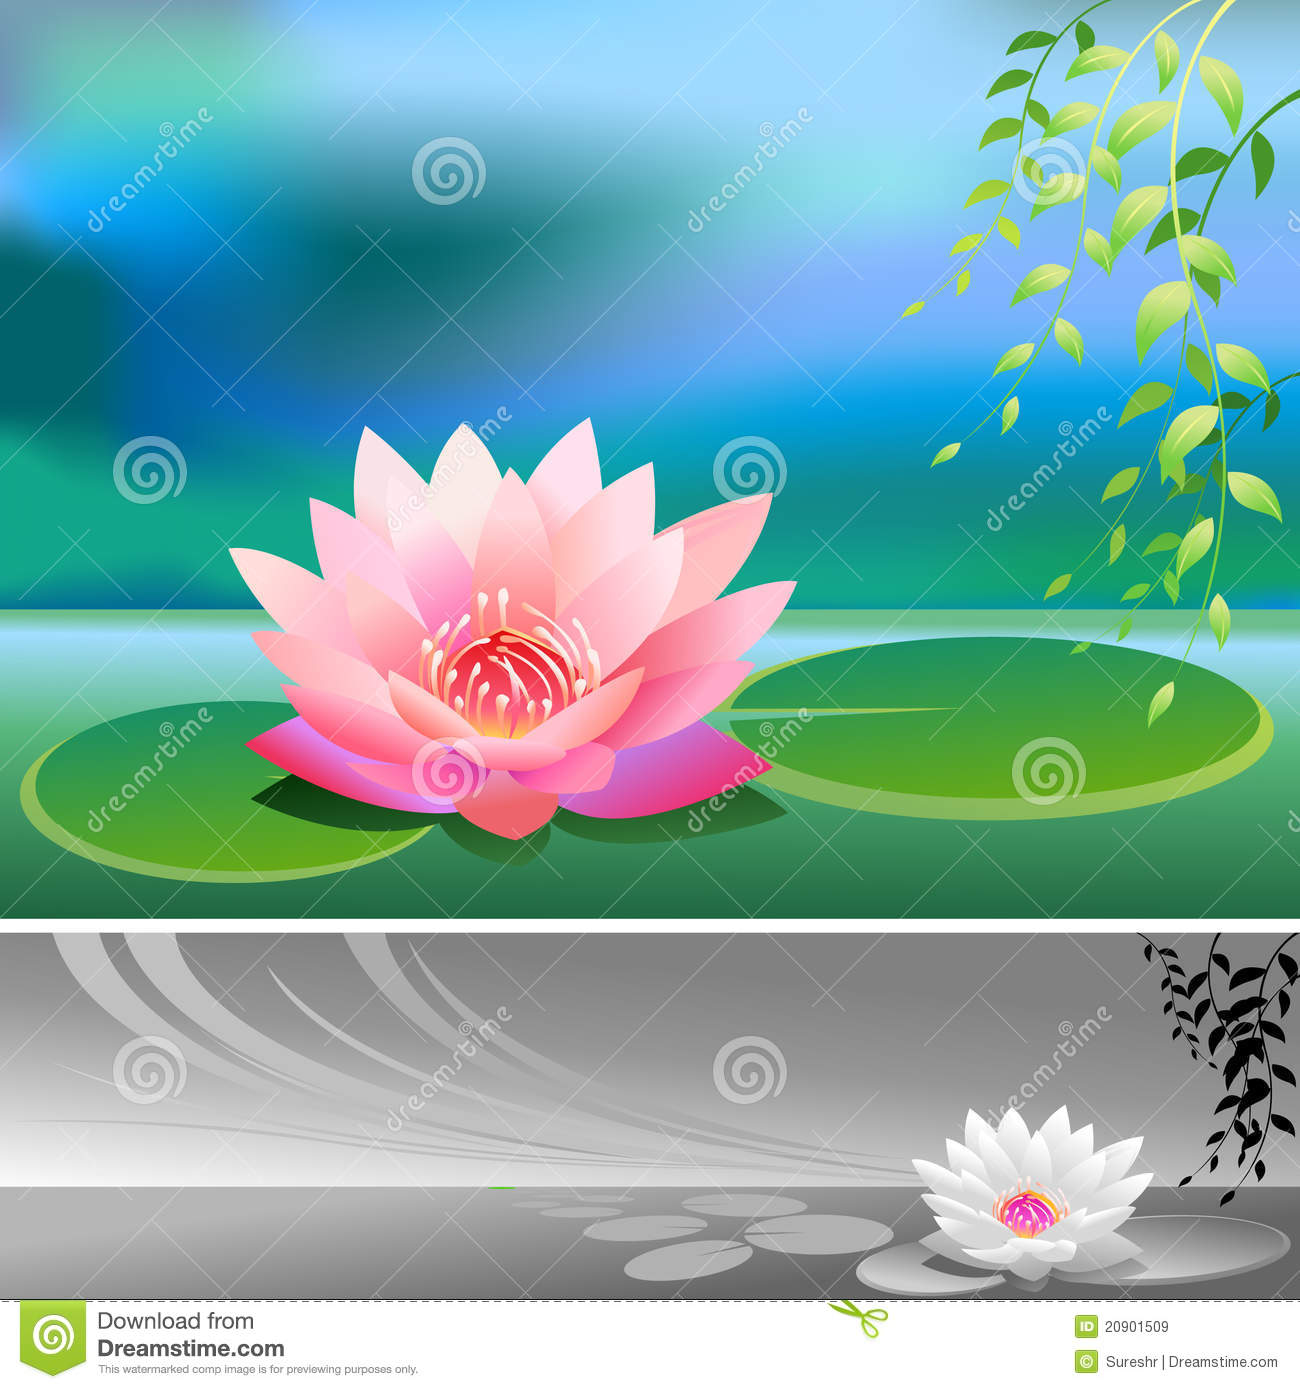 Free Lotus Flower Images Background Lotus Vector Flower White